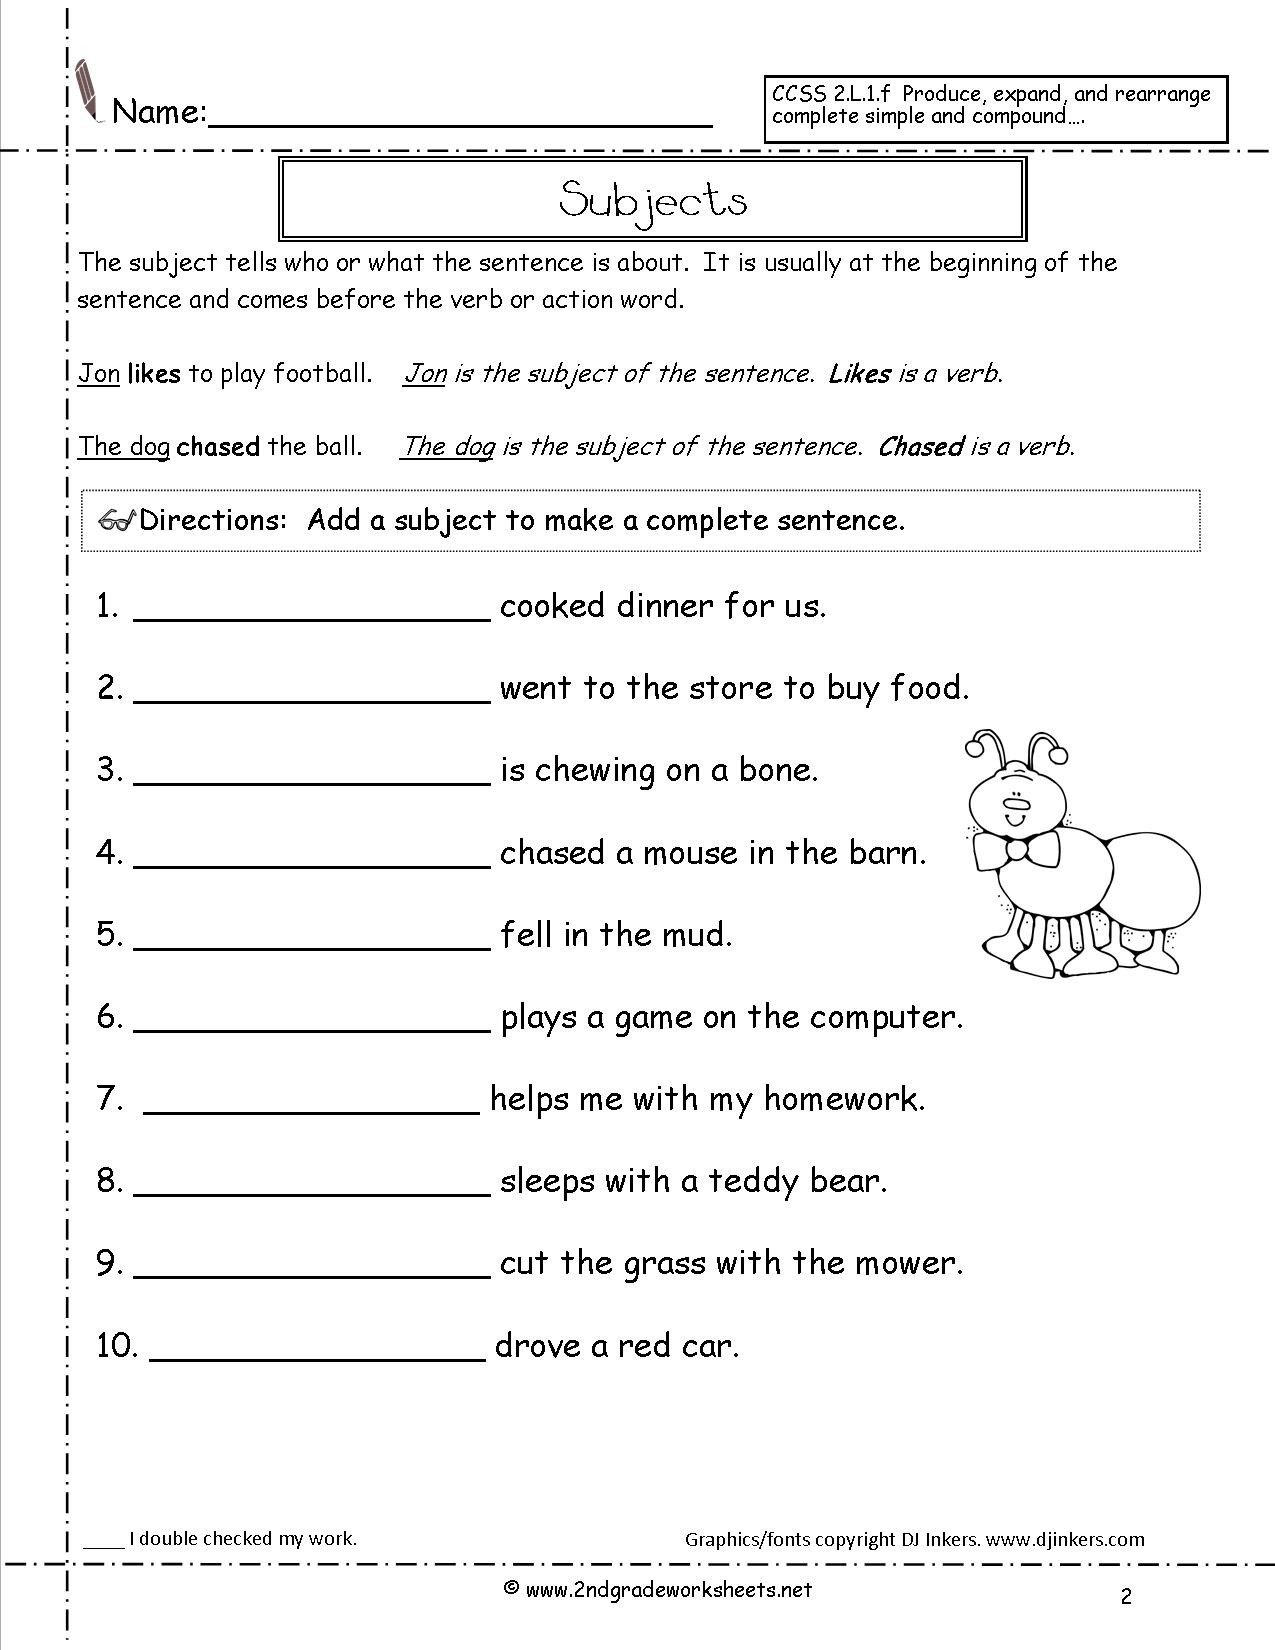 subjectworksheet2 incredible writing sentences worksheets for 1st grade printable first free reading prehension